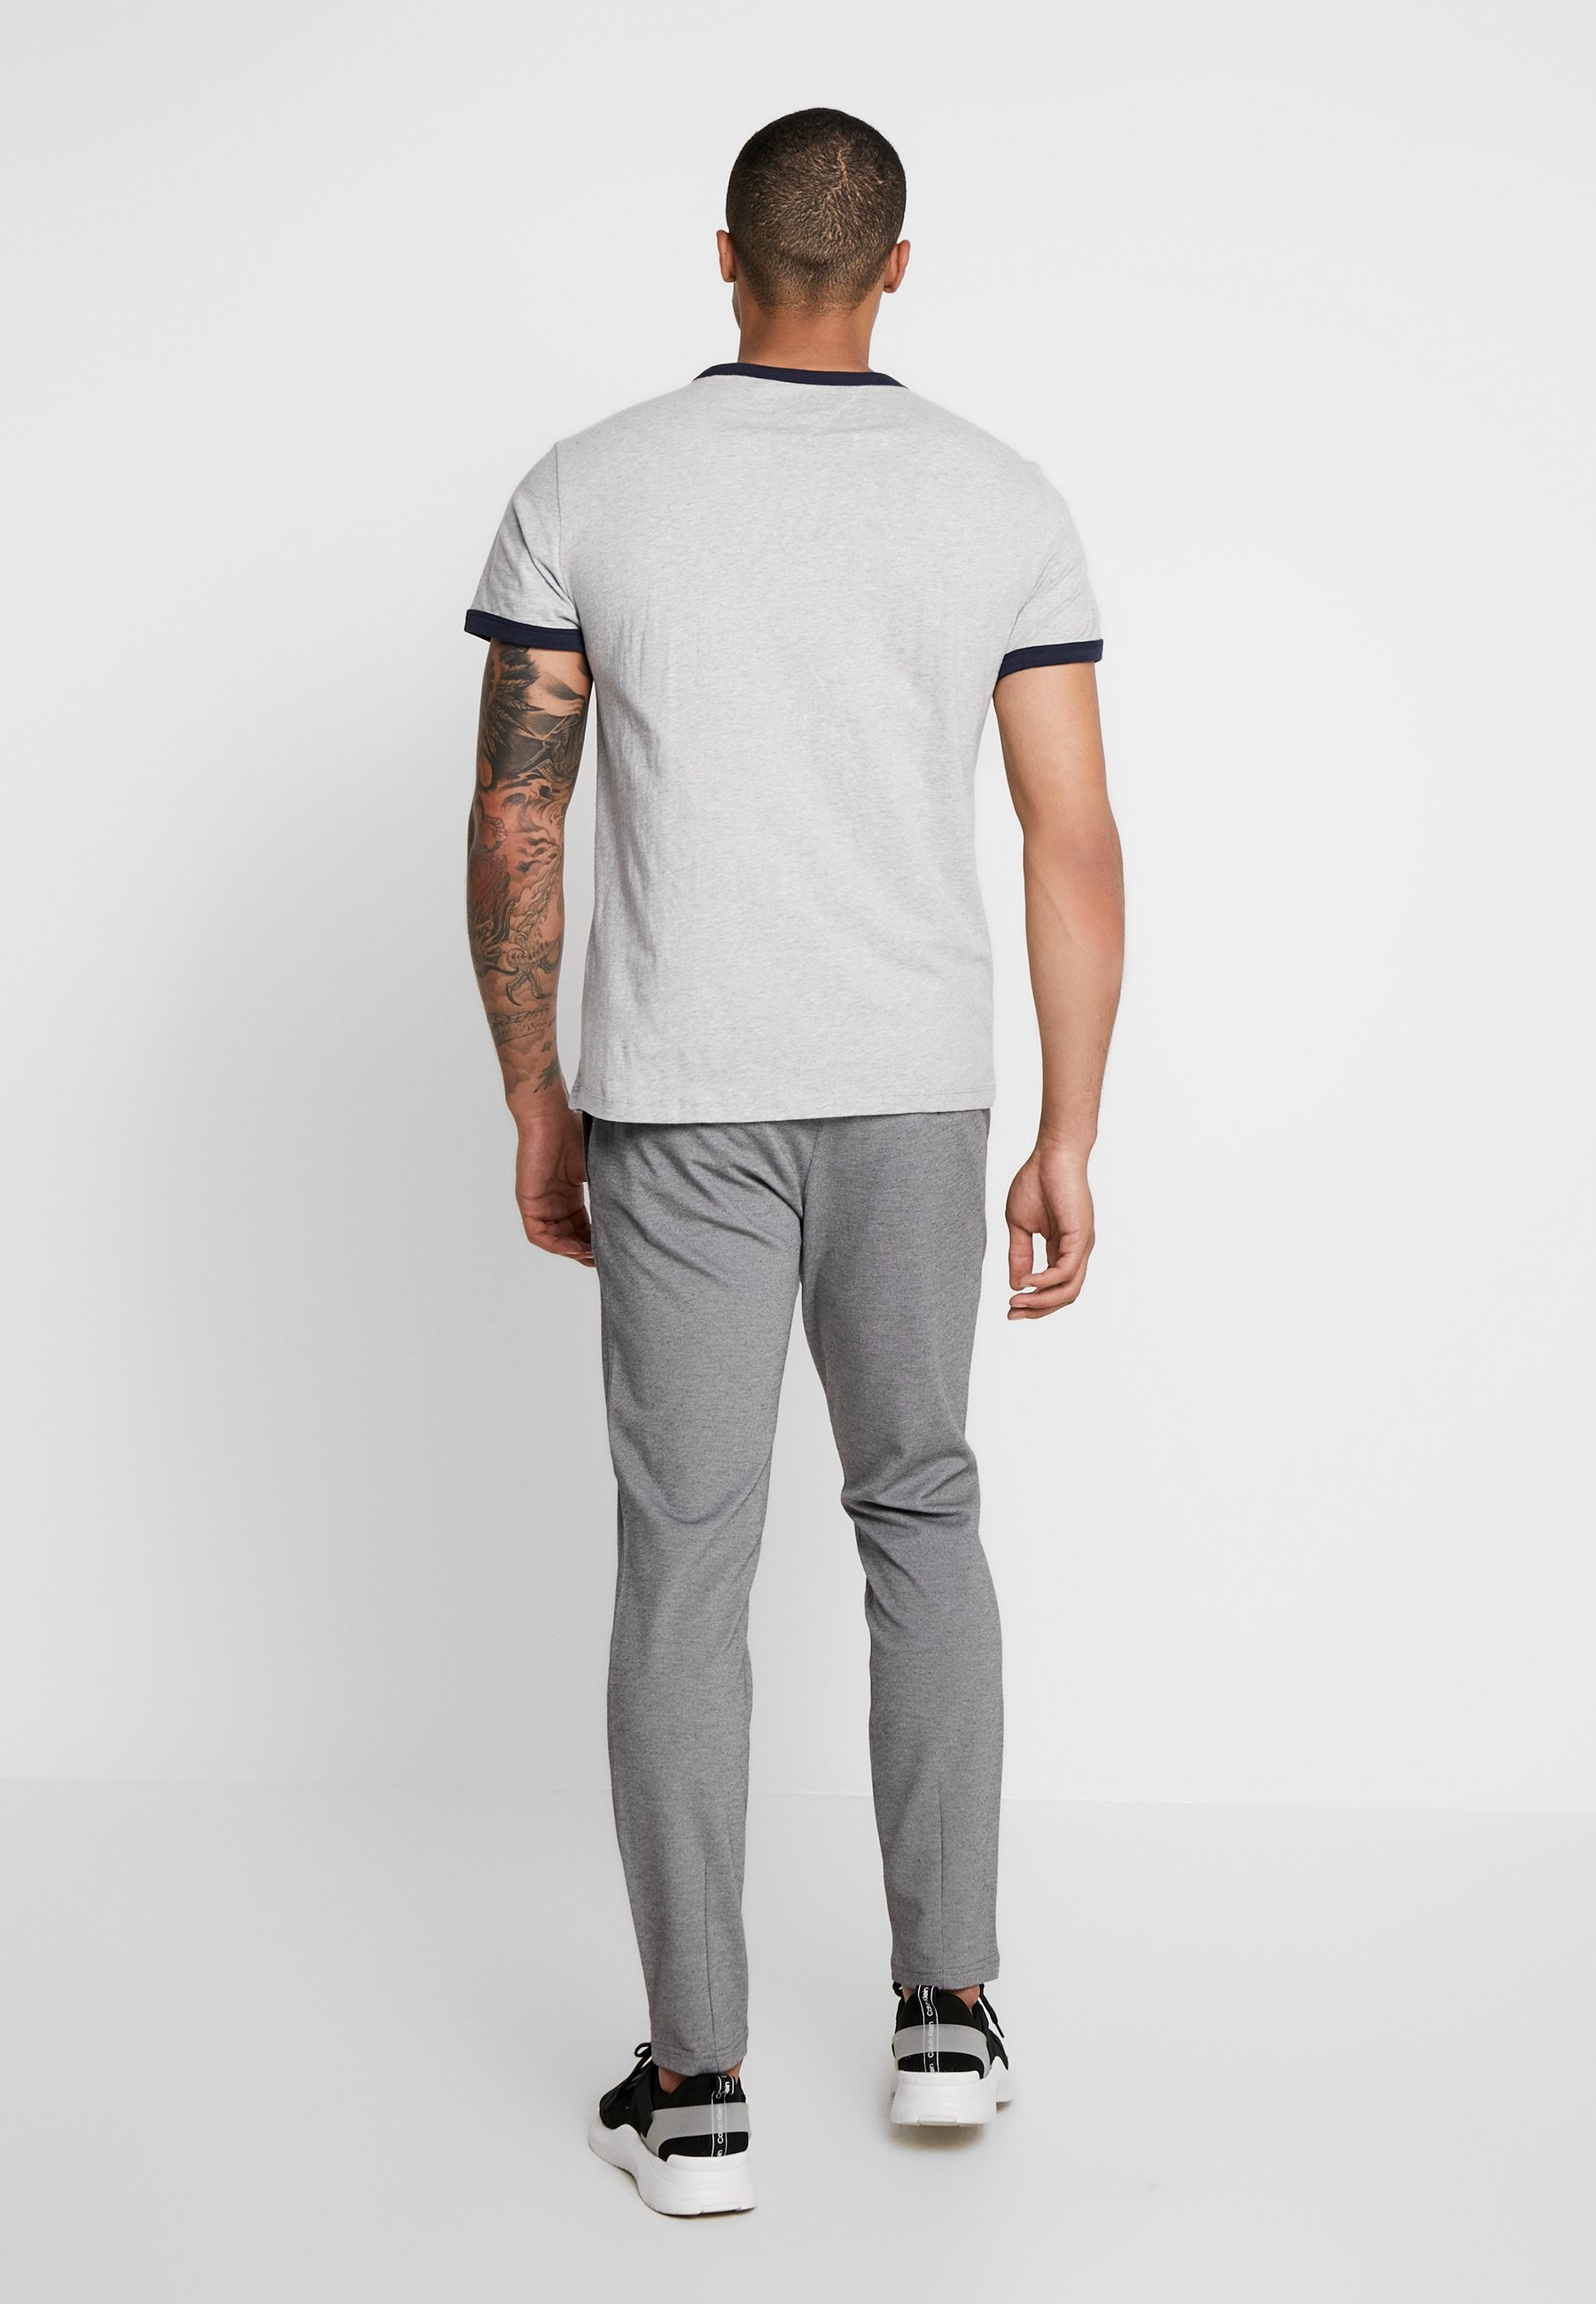 Tommy Solid Heather Light Ringer Grey Jeans TeeT shirt Basique 8nw0OPk